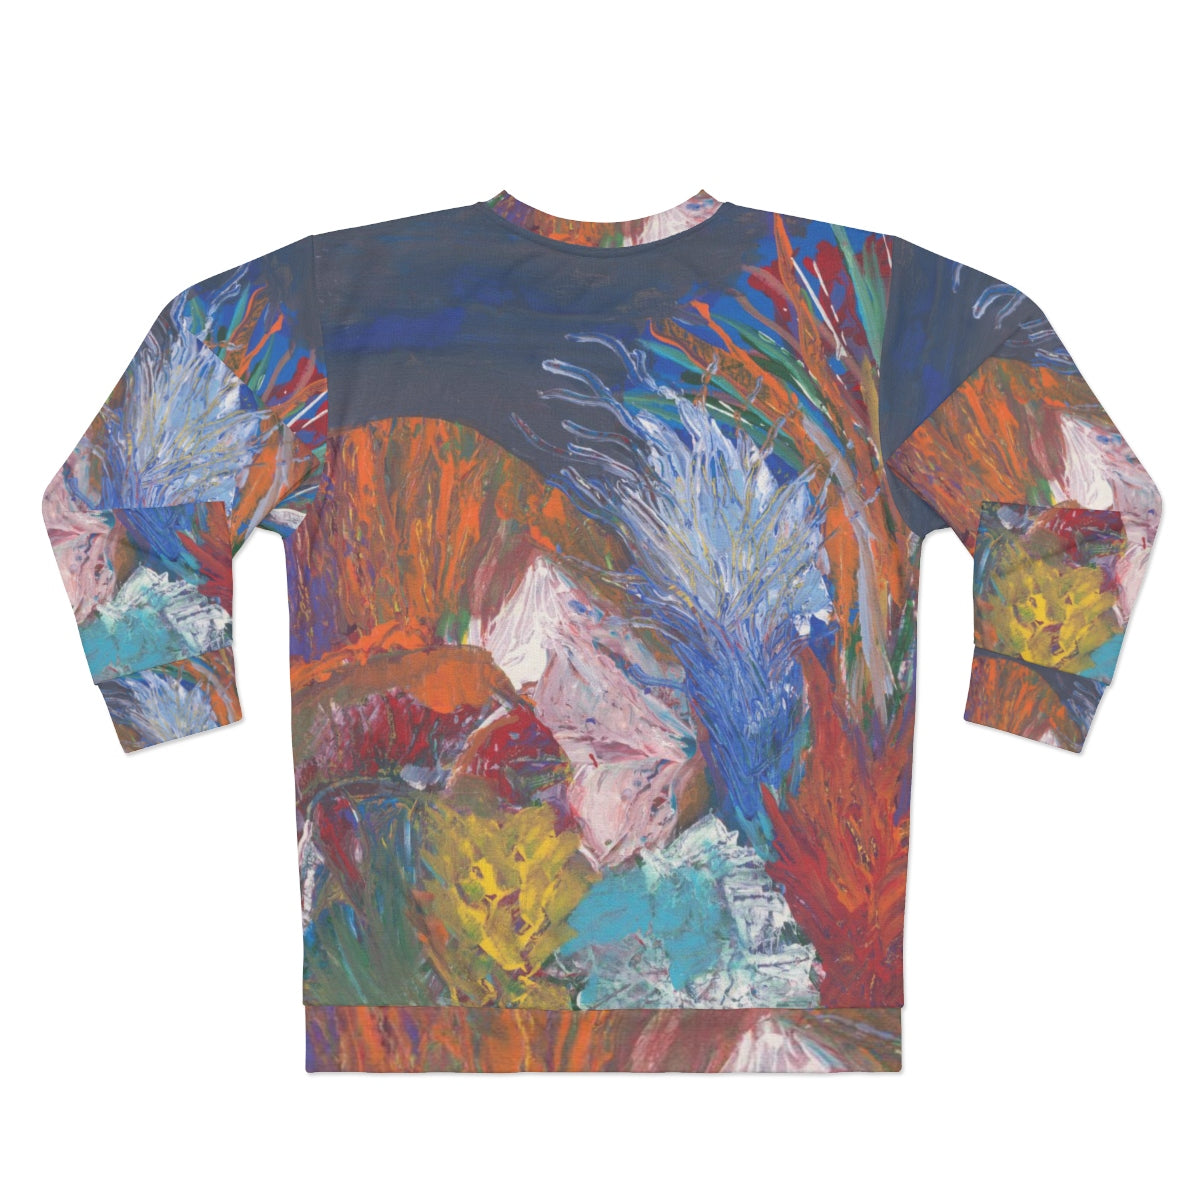 SEA LIFE  Unisex Sweatshirt  SIZES  XS - 2XL